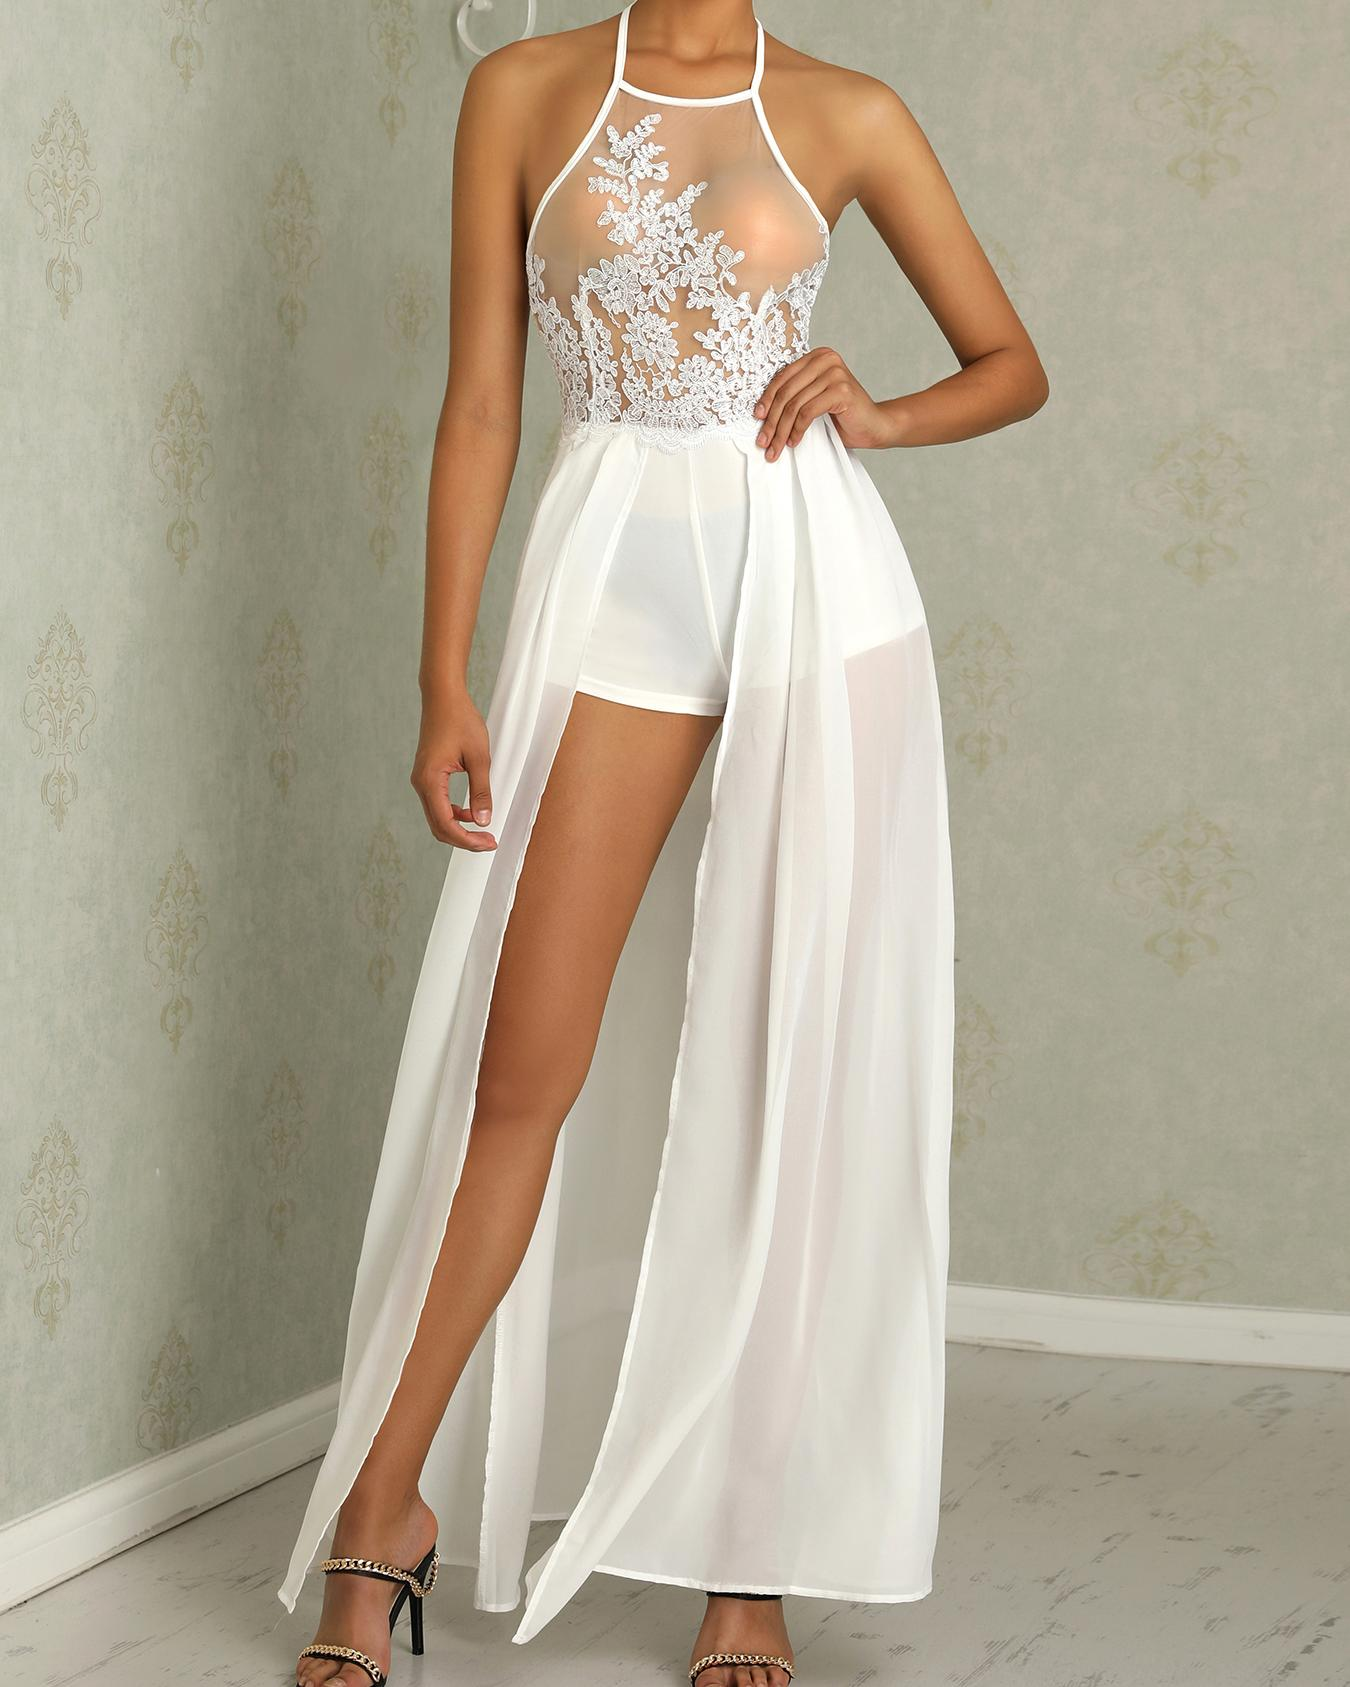 Sexy Sheer Mesh Lace Applique Maxi Romper Dress Online. Discover hottest  trend fashion at chicme.com 25c1f809d